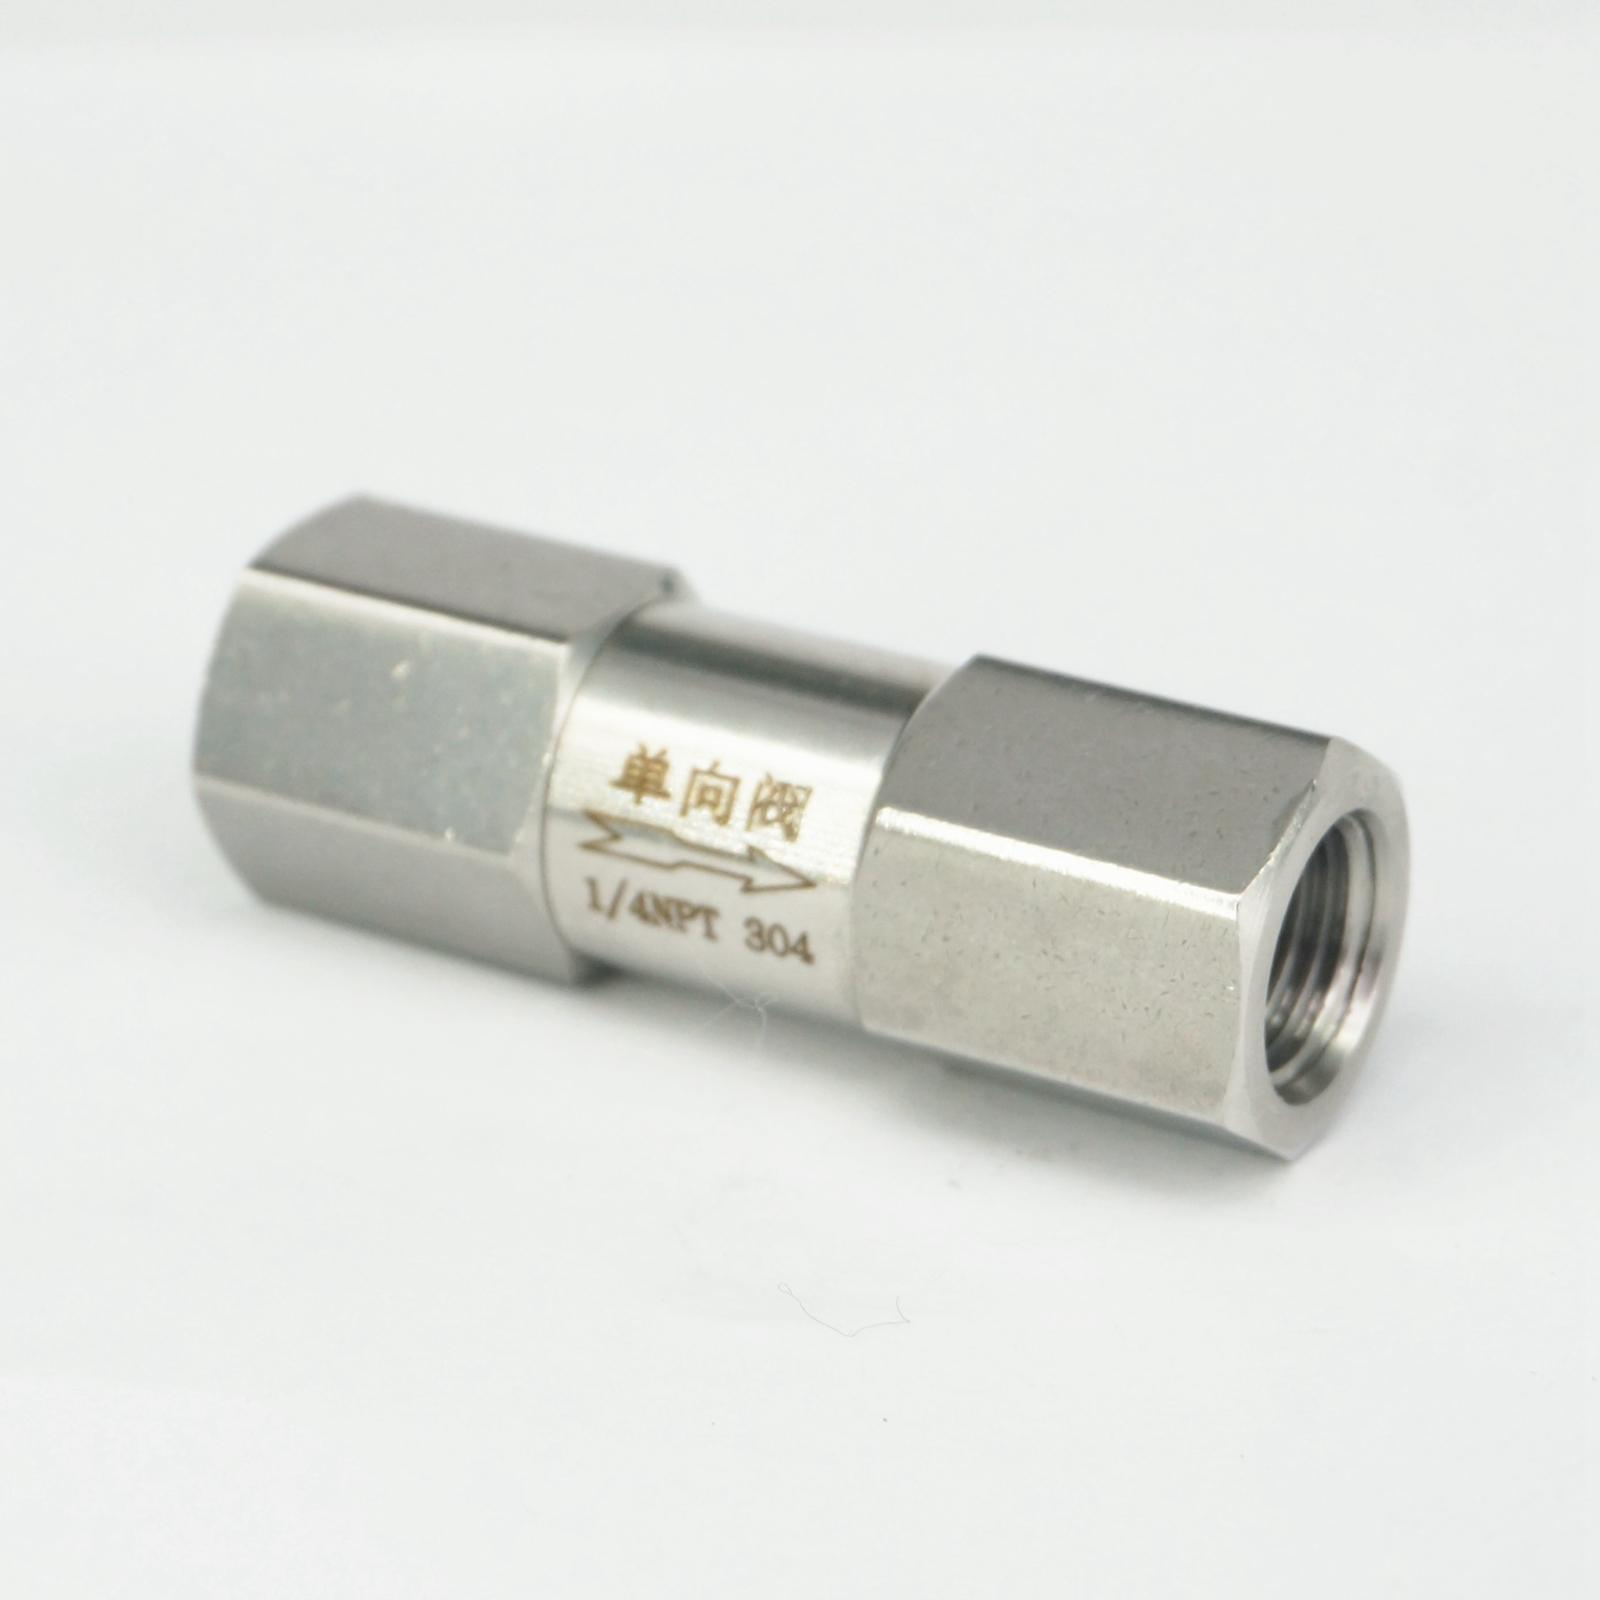 1/4 NPT Female Check One Way Valve 304 Stainless Steel Water Gas Oil Non-return 1 8 npt female check one way valve 304 stainless steel water gas oil non return